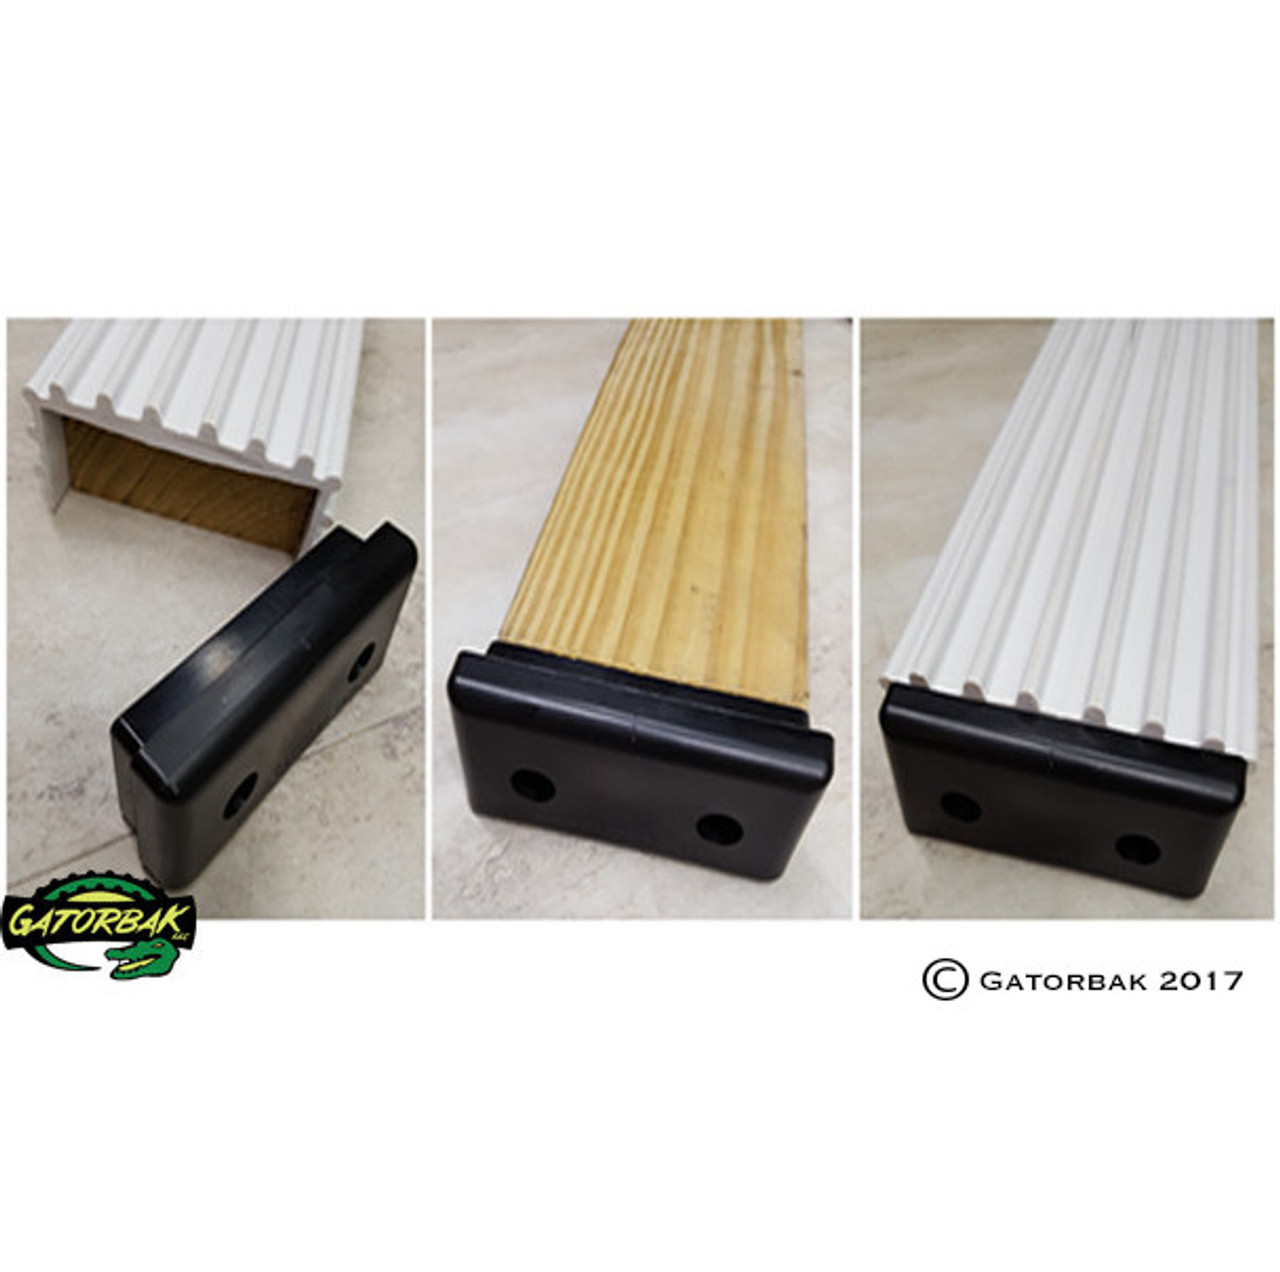 2x4 Flat GB350 End Cap